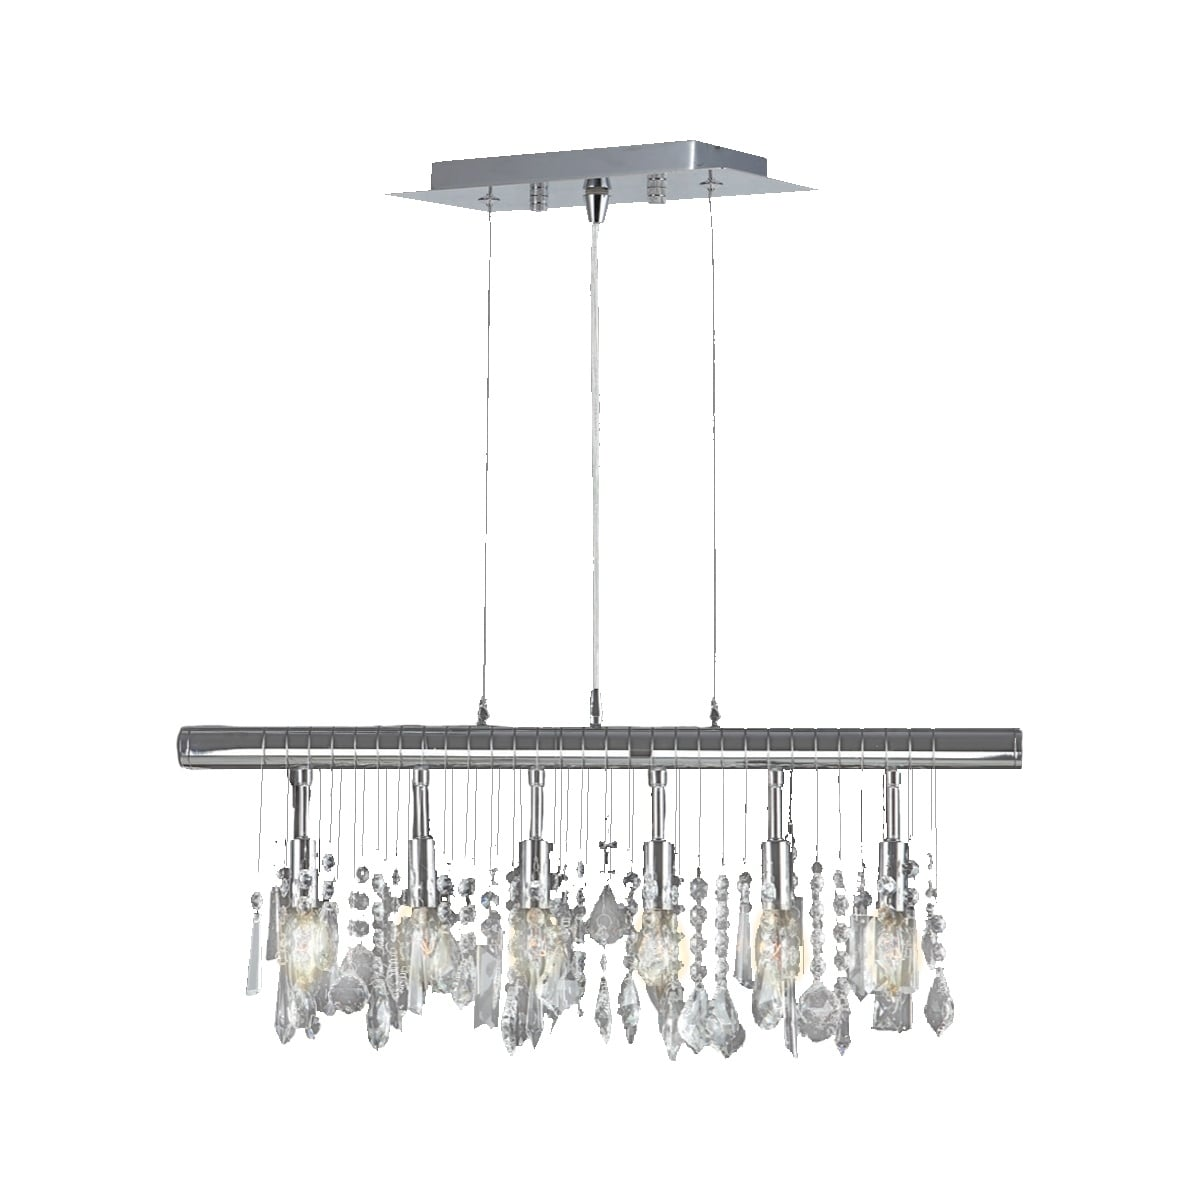 Sparkling Faceted Crystal 6 Light Kitchen Island Linear Pendant Large 24 In Wide On Sale Overstock 10791373